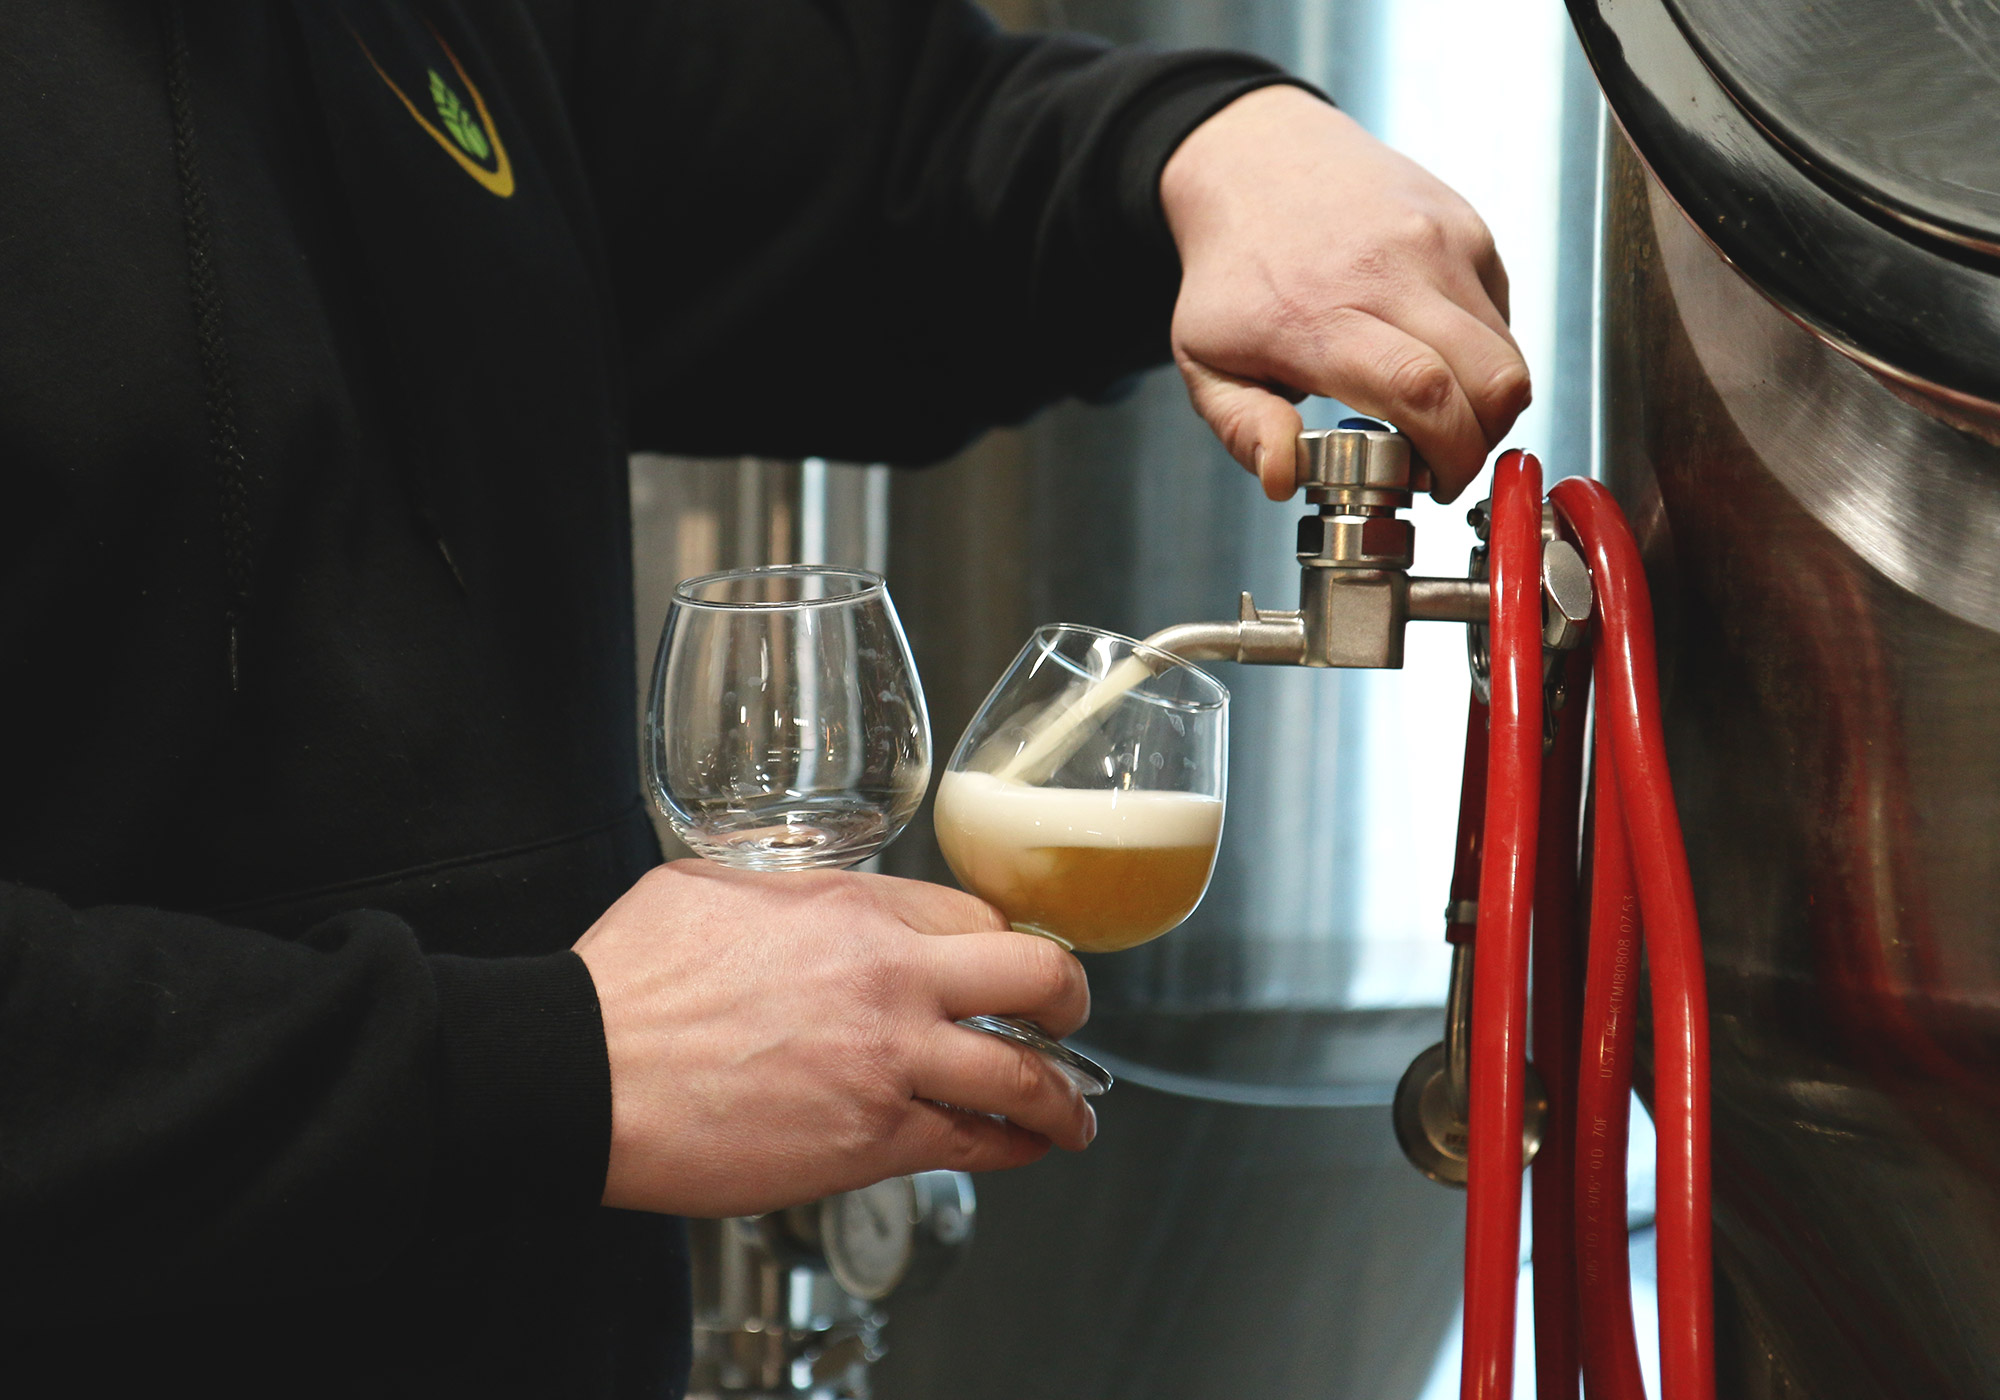 TheHopReview-BeerTree-14.jpg